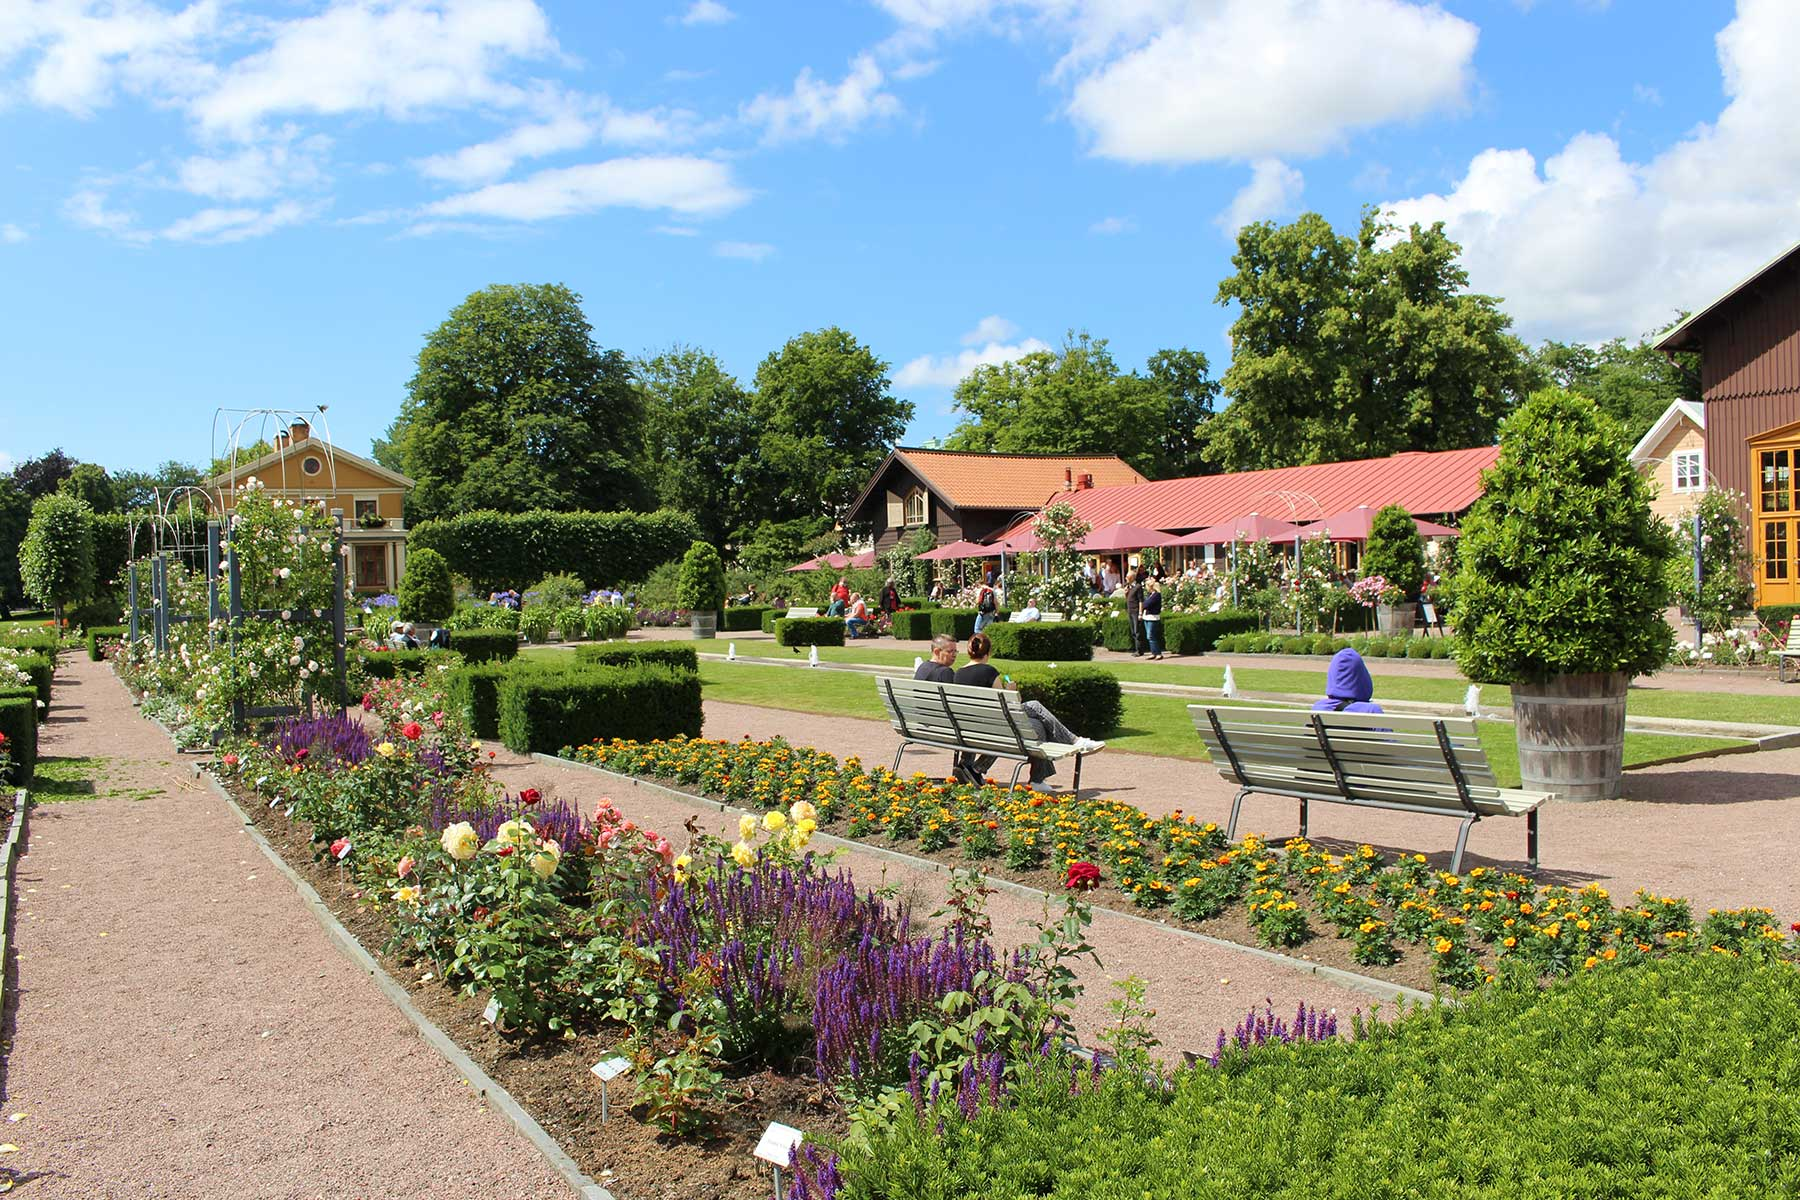 gothenburg-garden-society-garden-13